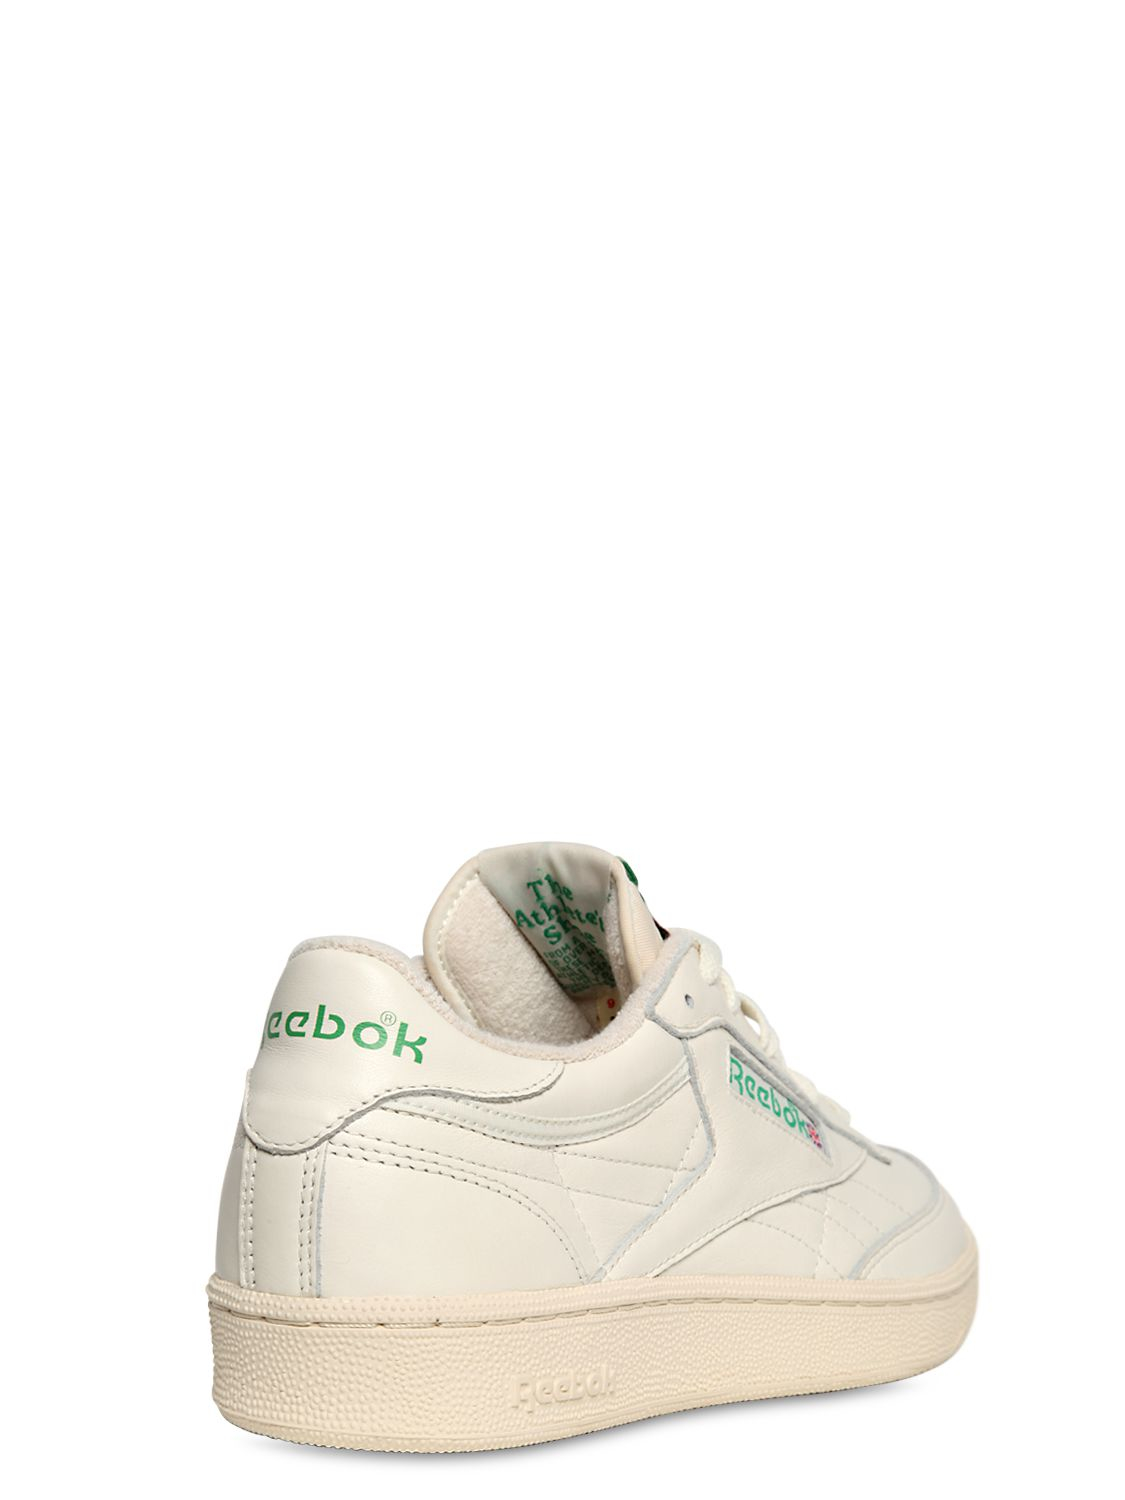 98b2d4bb9fdf23 Lyst - Reebok Club C 85 Vintage Leather Low-Top Sneakers in White for Men